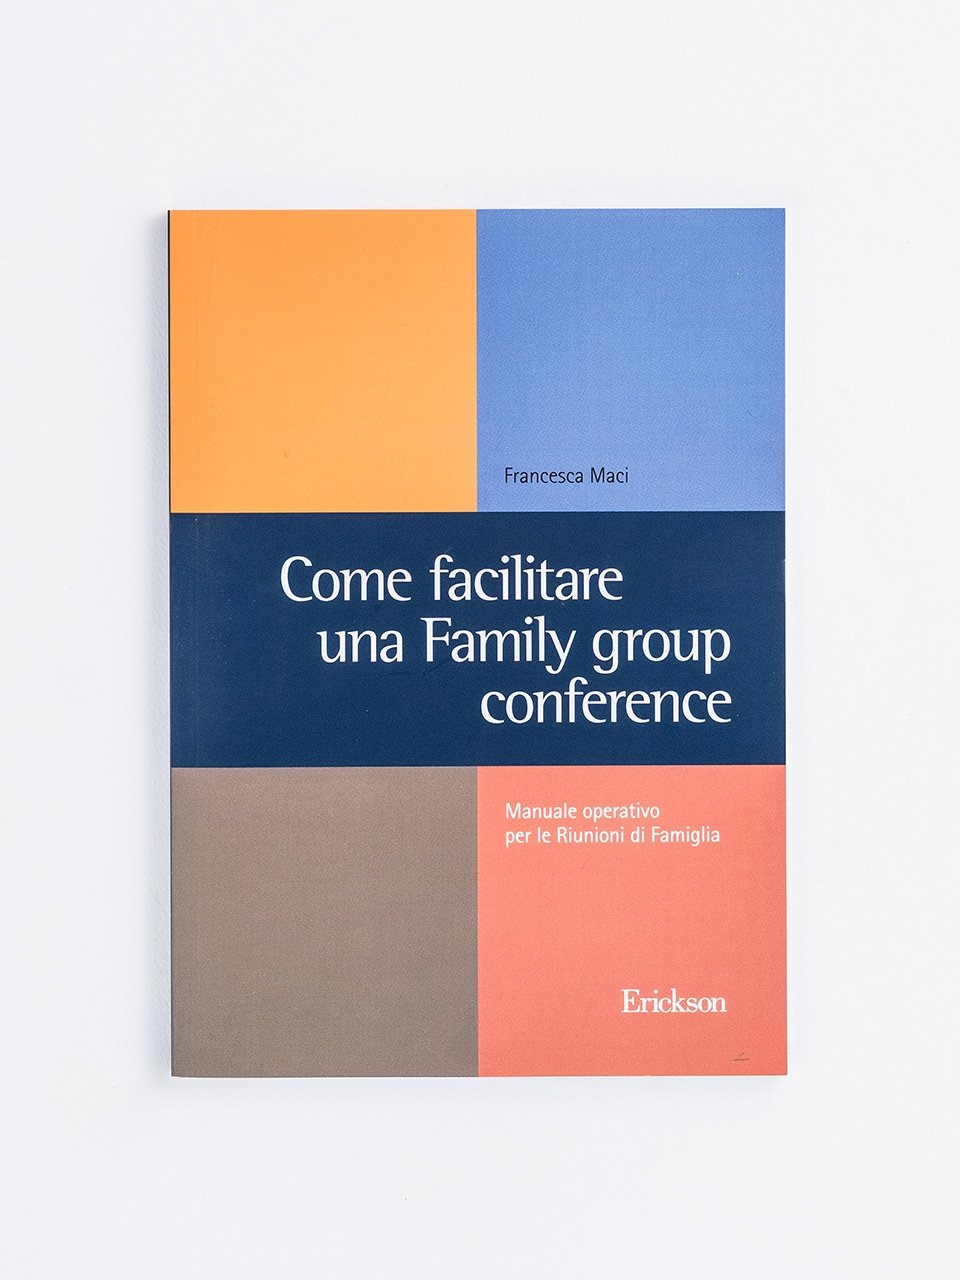 Come facilitare una Family group conference - I mini gialli dei dettati 3 - Libri - Erickson